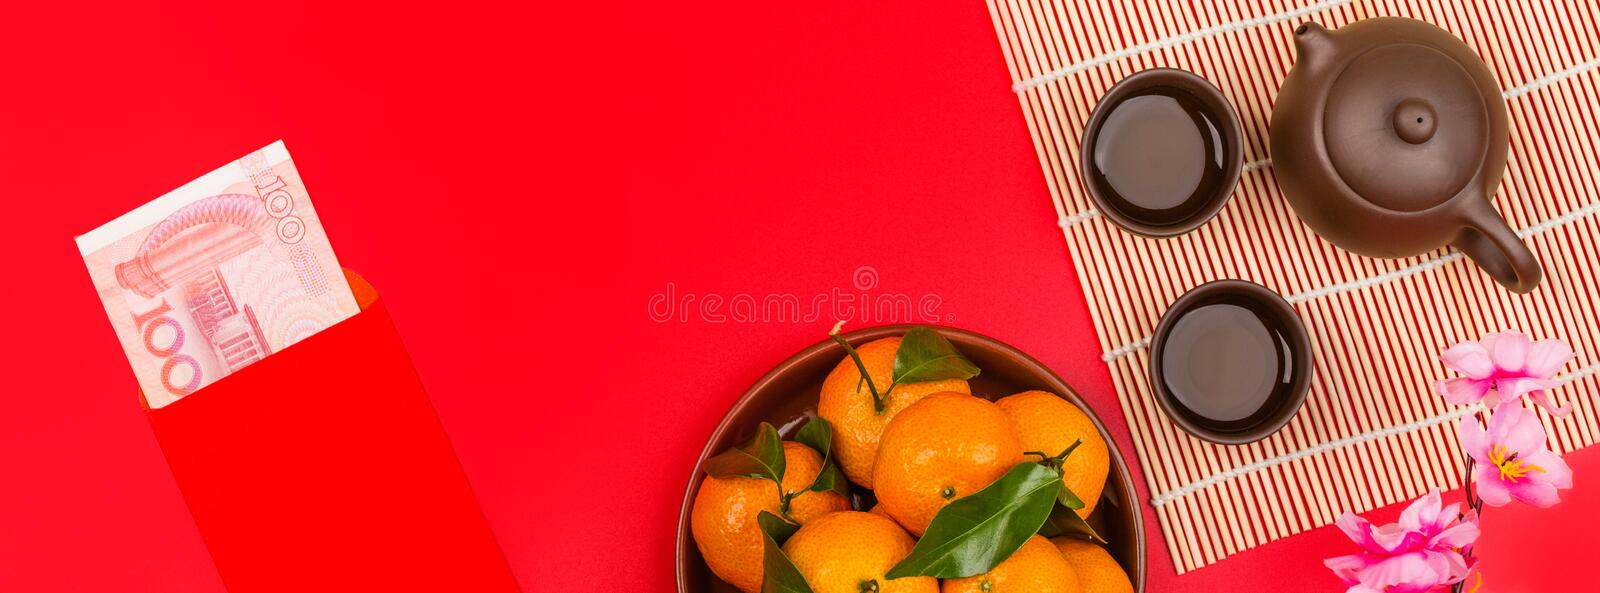 Flat lay of accessories Chinese new year 2020 and decorations Lunar new year festival concept background. Overhead, top view. Copy royalty free stock photos